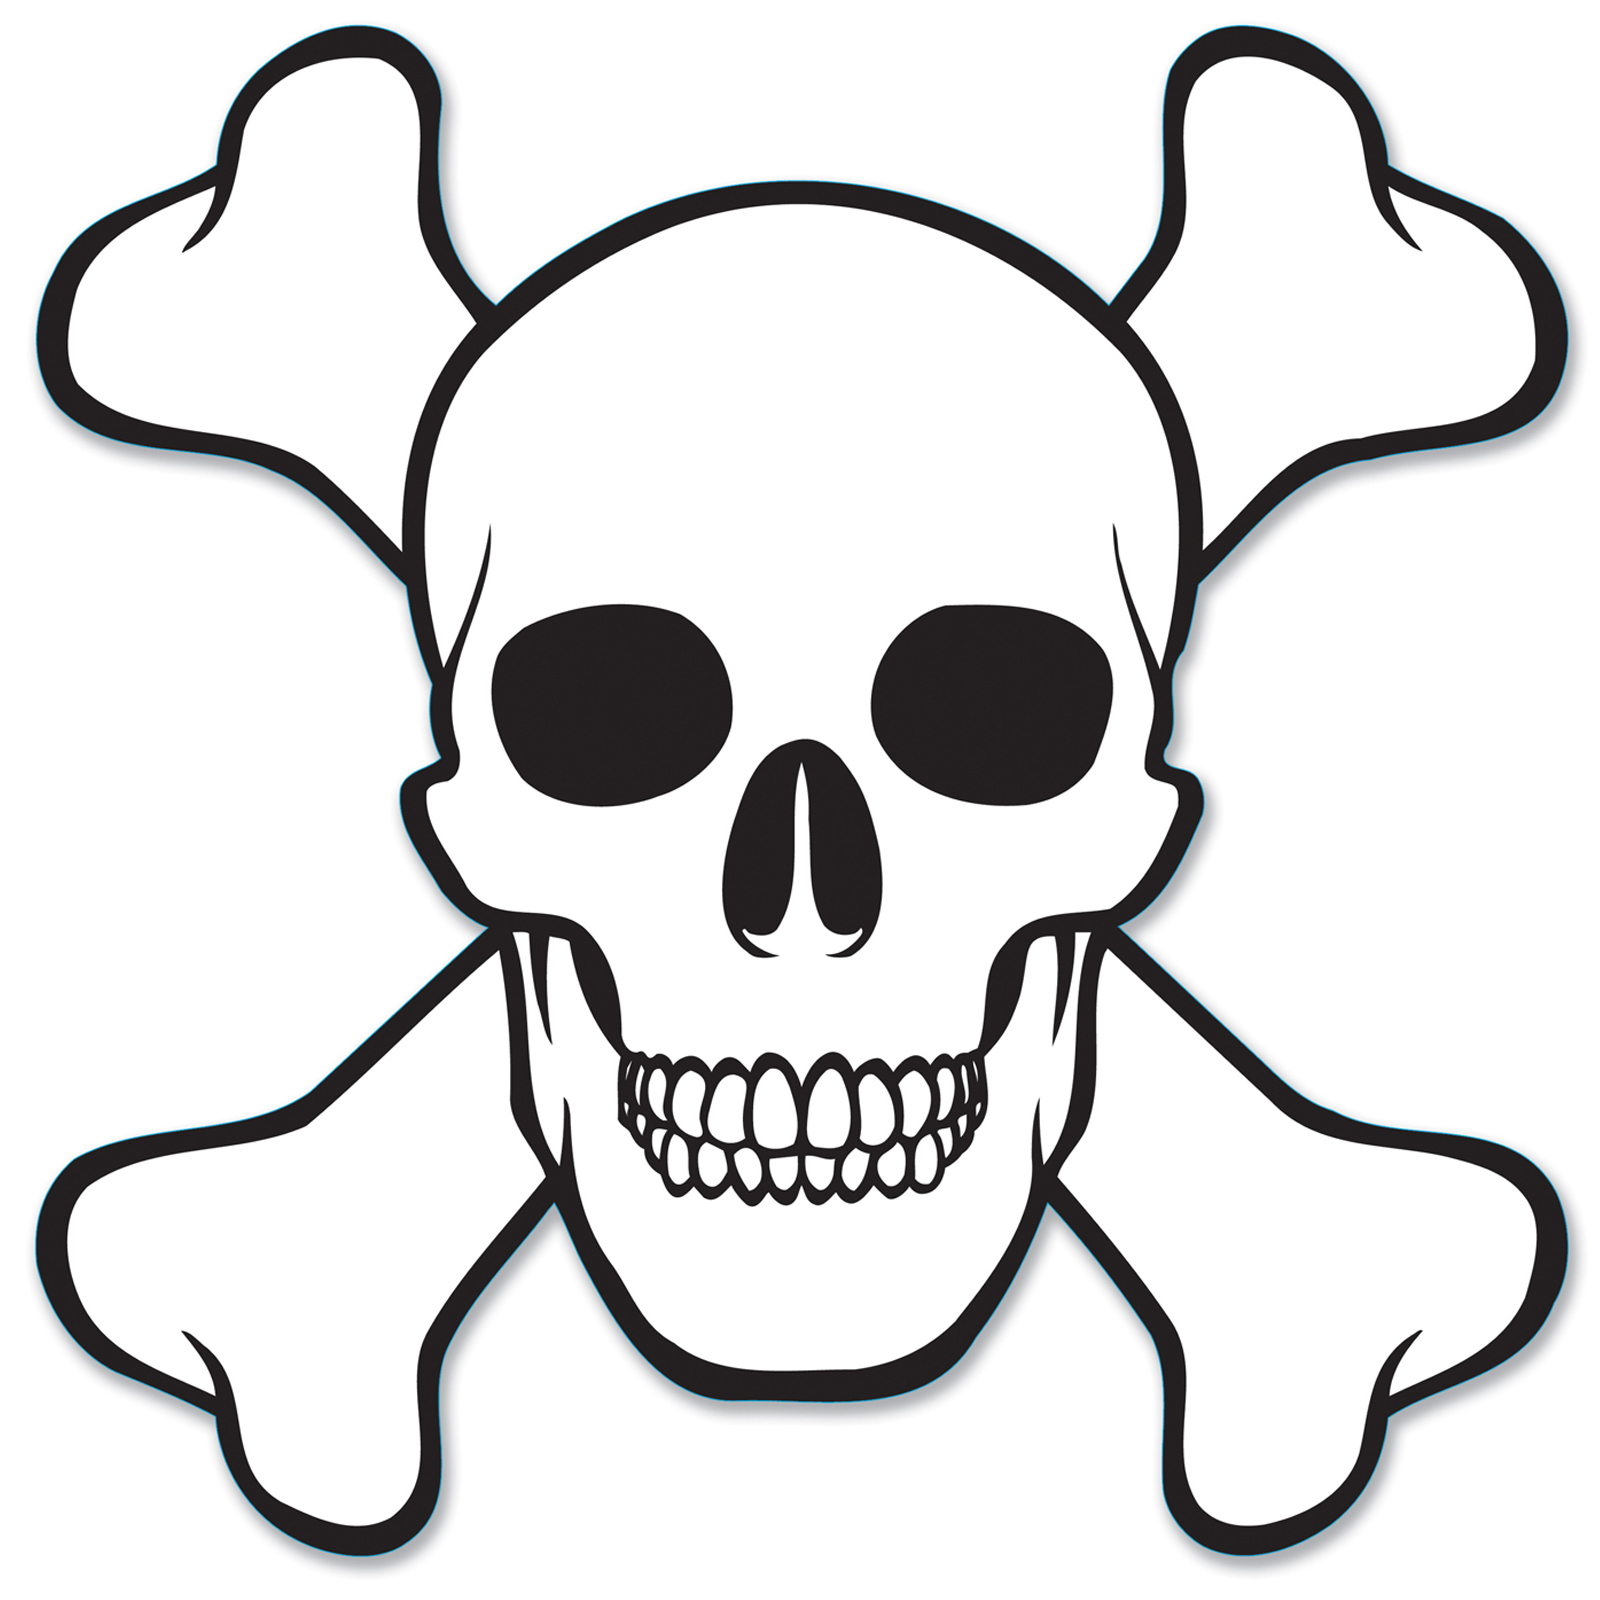 1600x1600 Easy To Draw Skull And Crossbones